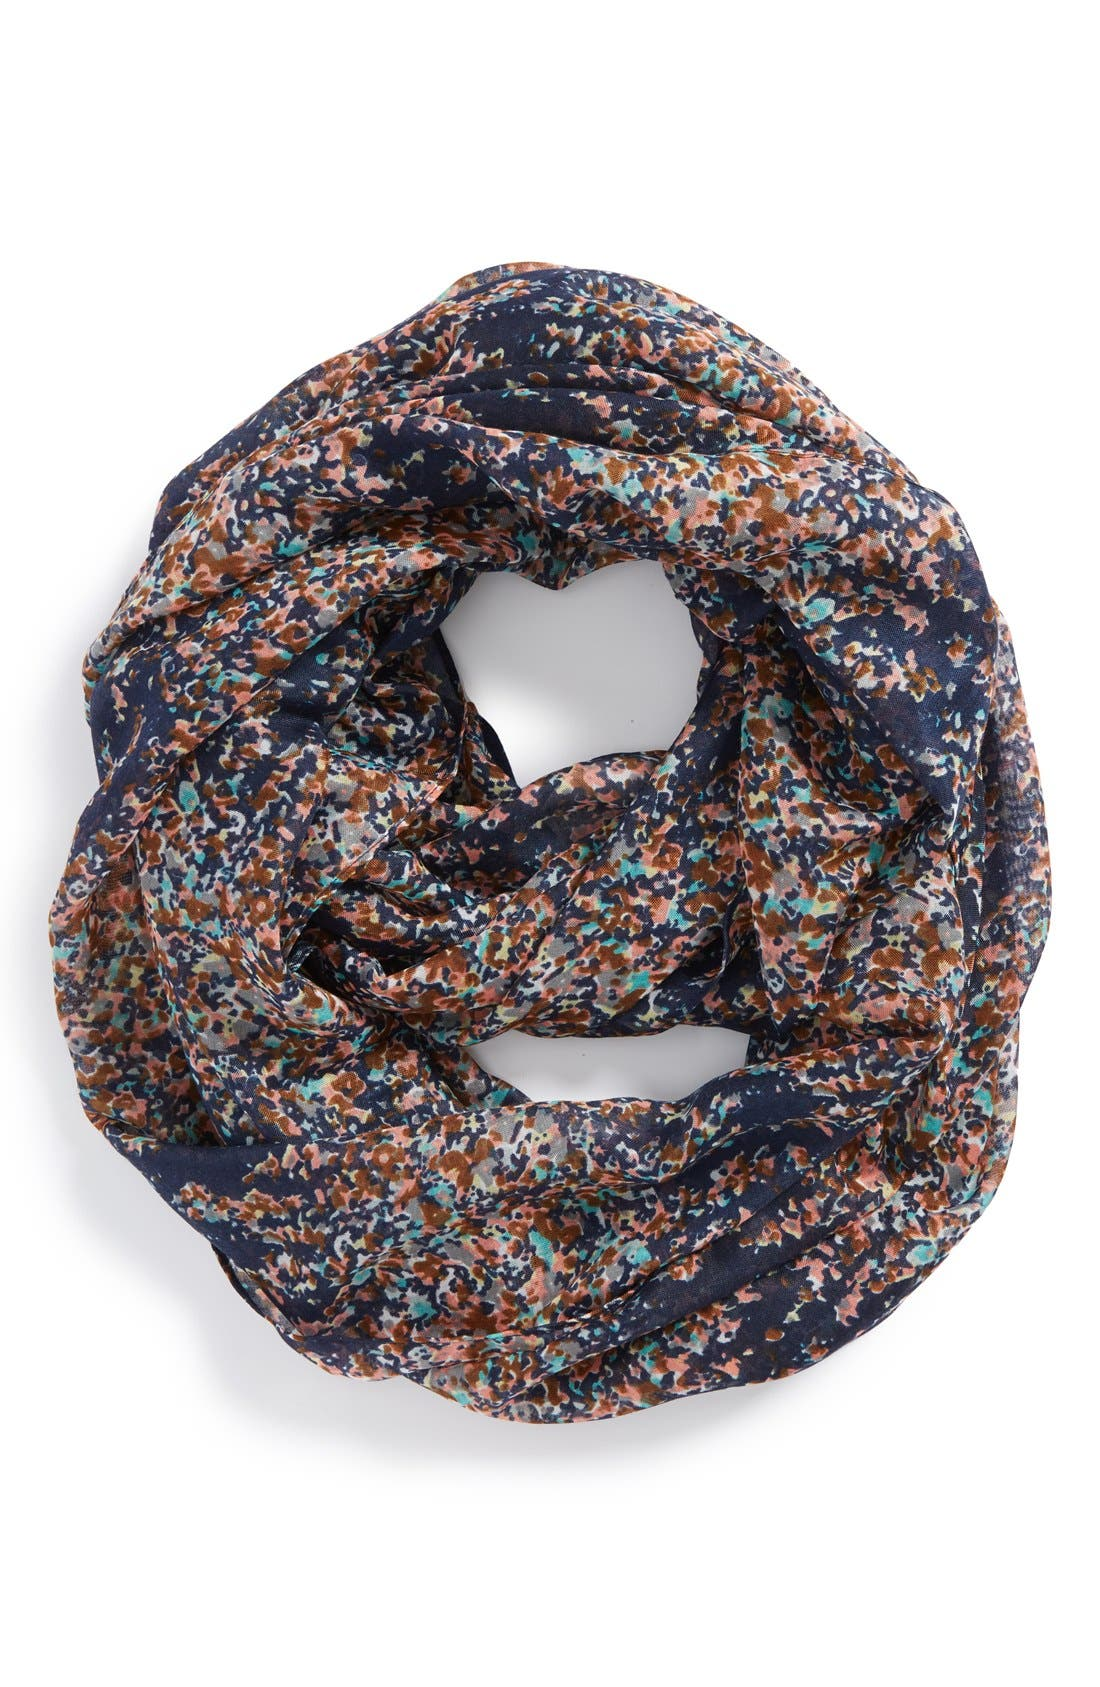 'Scattered Ditsy' Floral Print Infinity Scarf,                             Main thumbnail 1, color,                             400